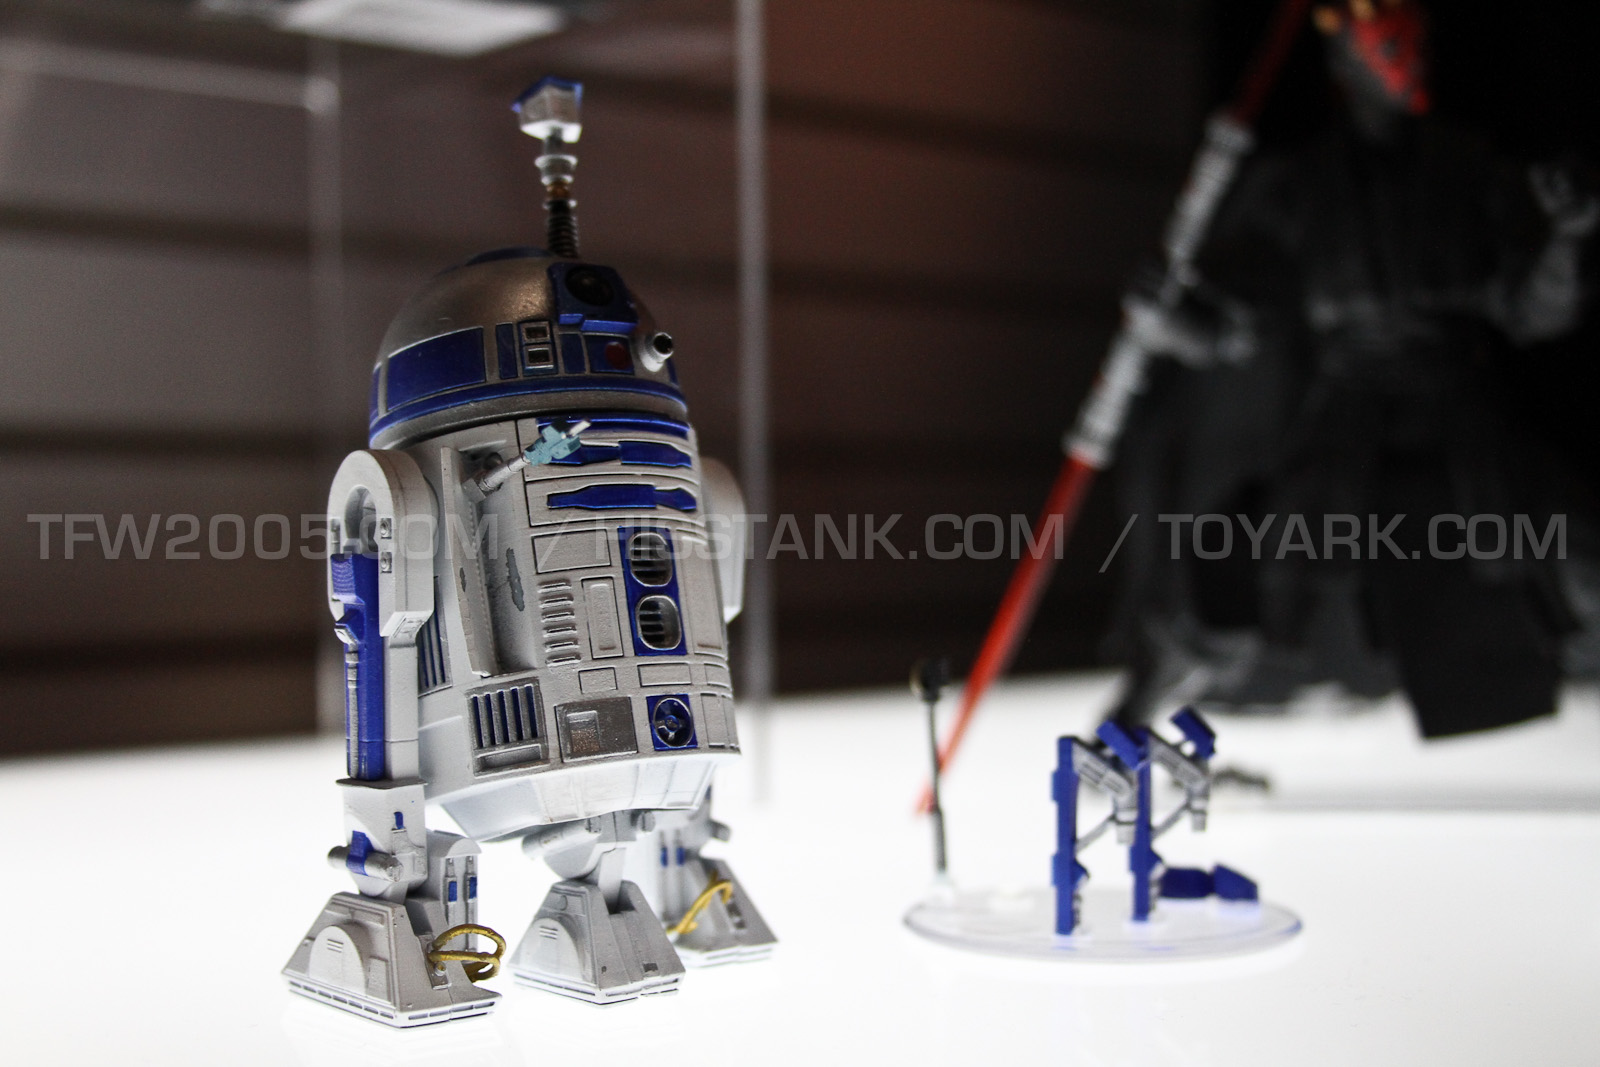 Star Wars Toys 2013 : Star wars toys from toy fair the toyark news